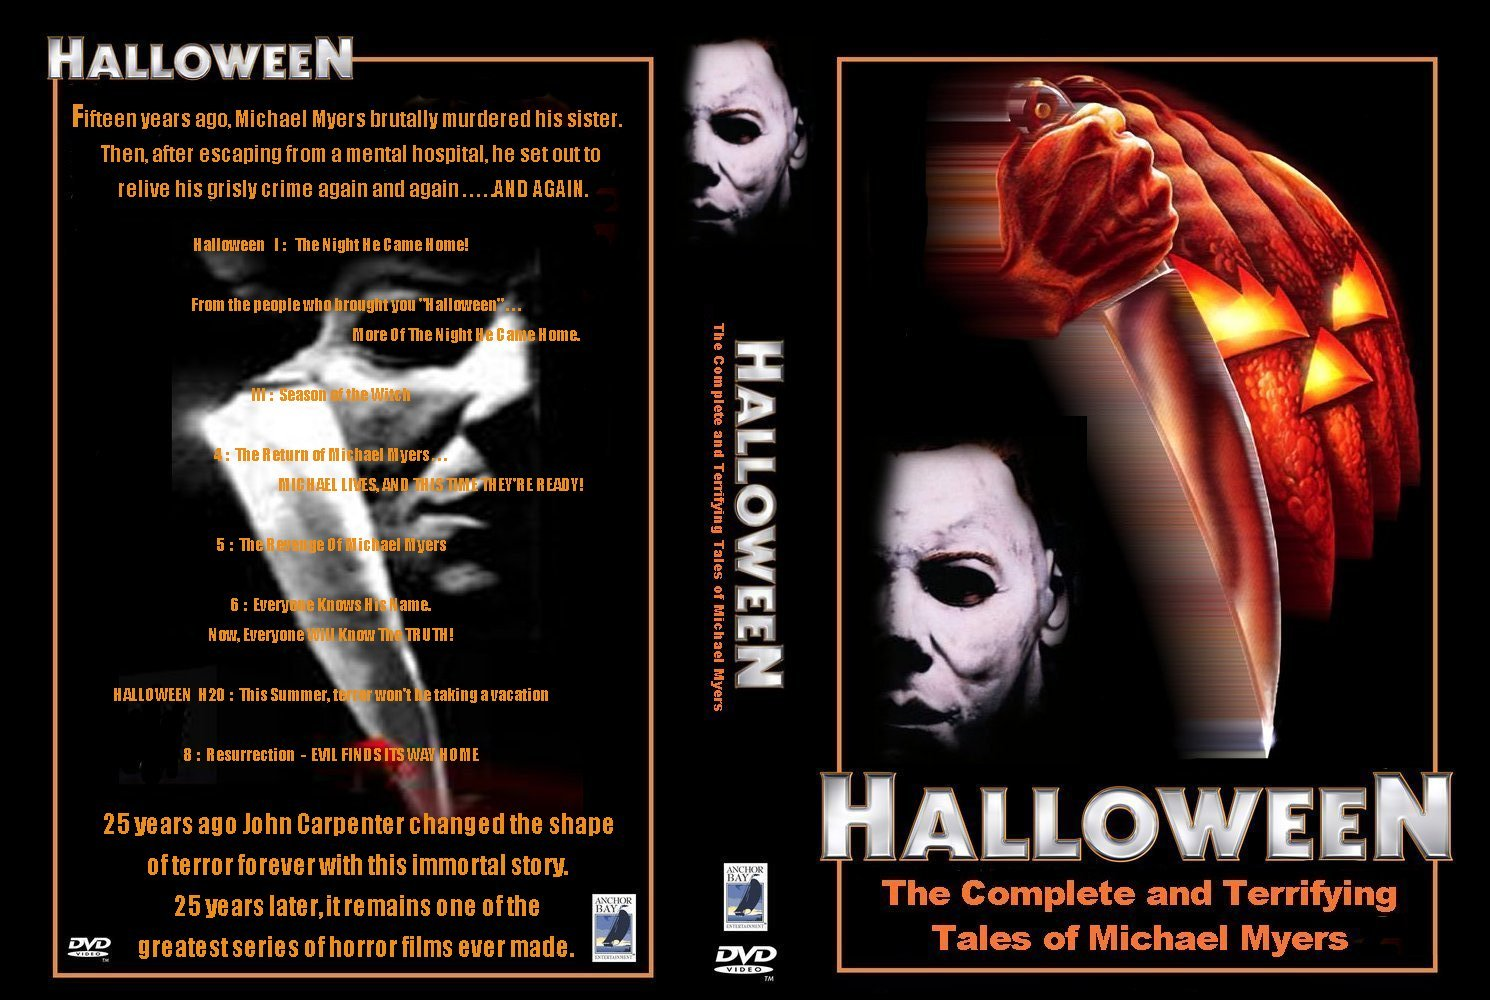 the horrors of halloween: halloween franchise (1978-2009) boxset ads